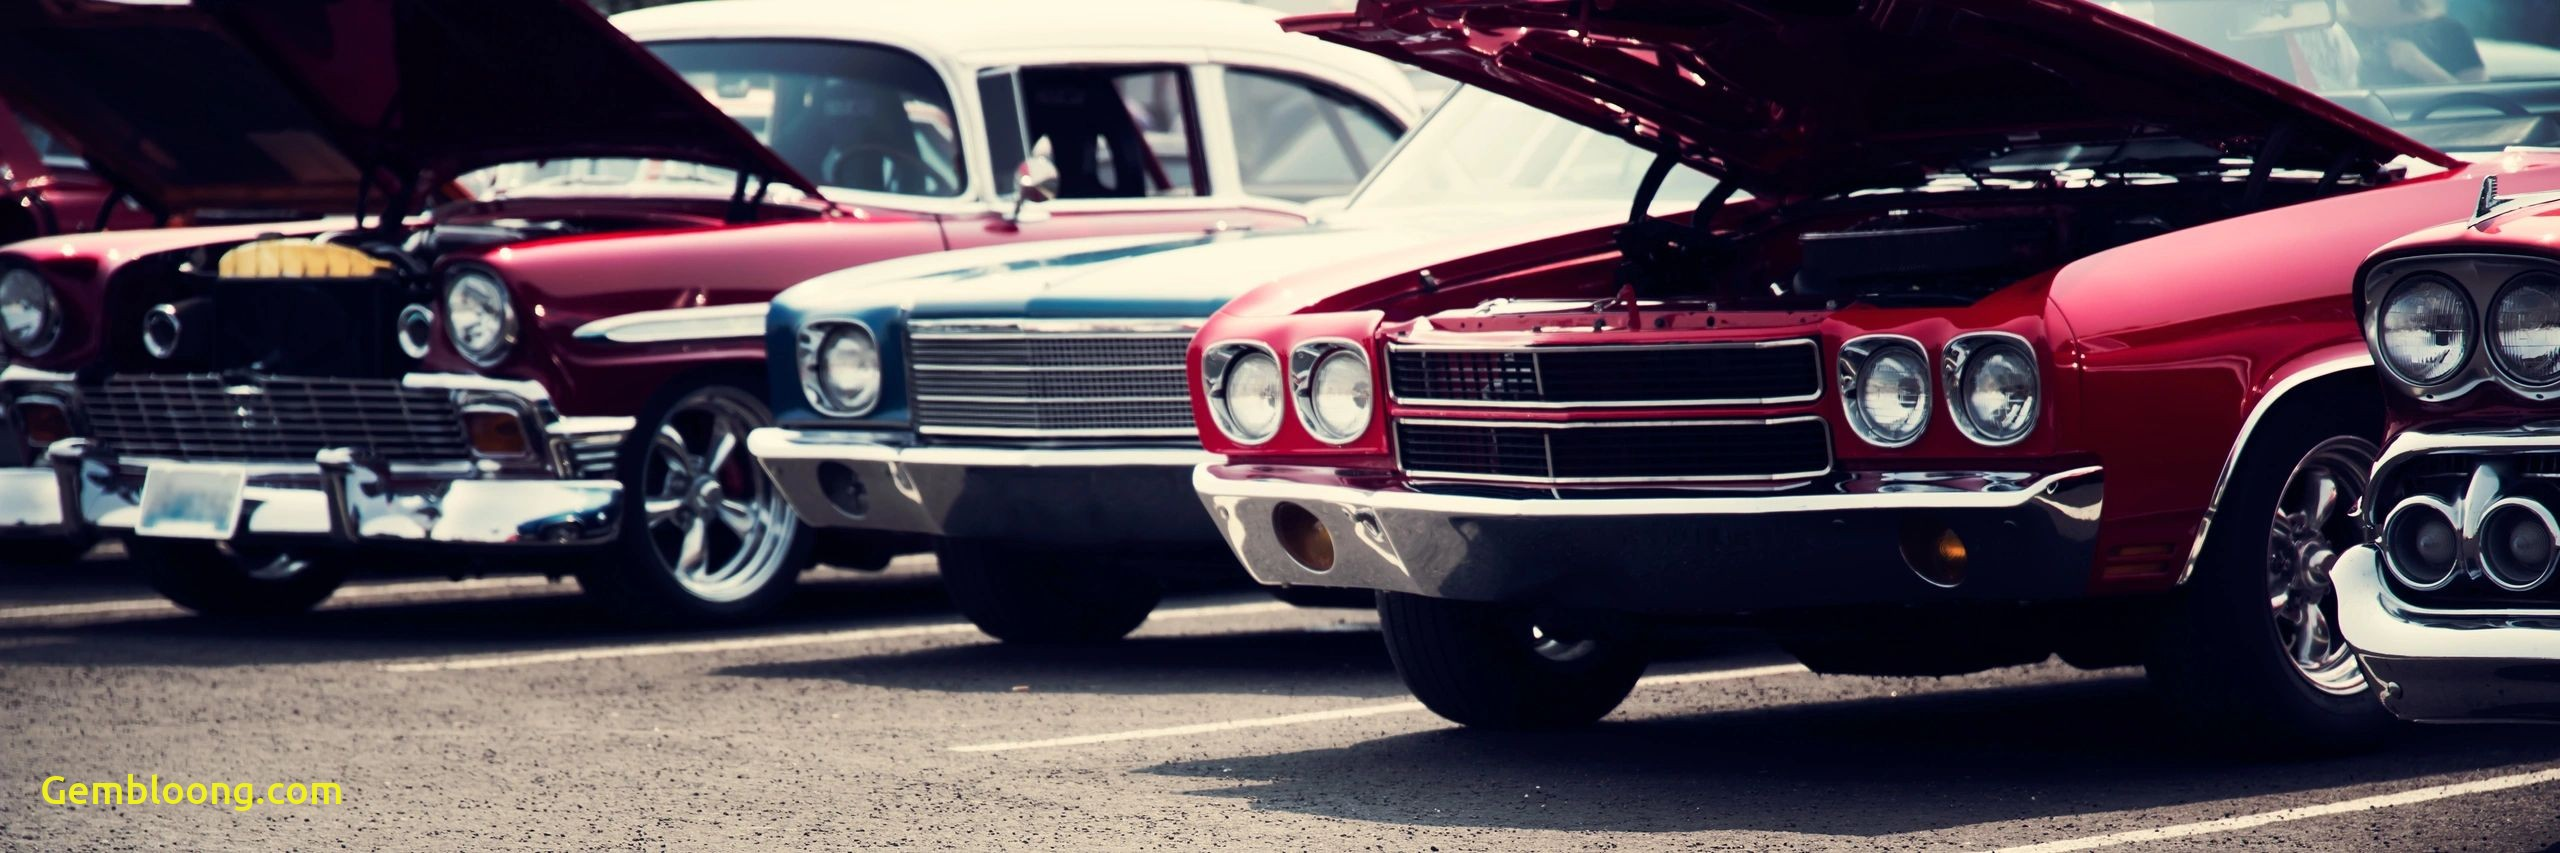 Muscle Cars for Sale Inspirational Dixietraders Muscle Cars Cars for Sale Hot Rods Muscle Cars